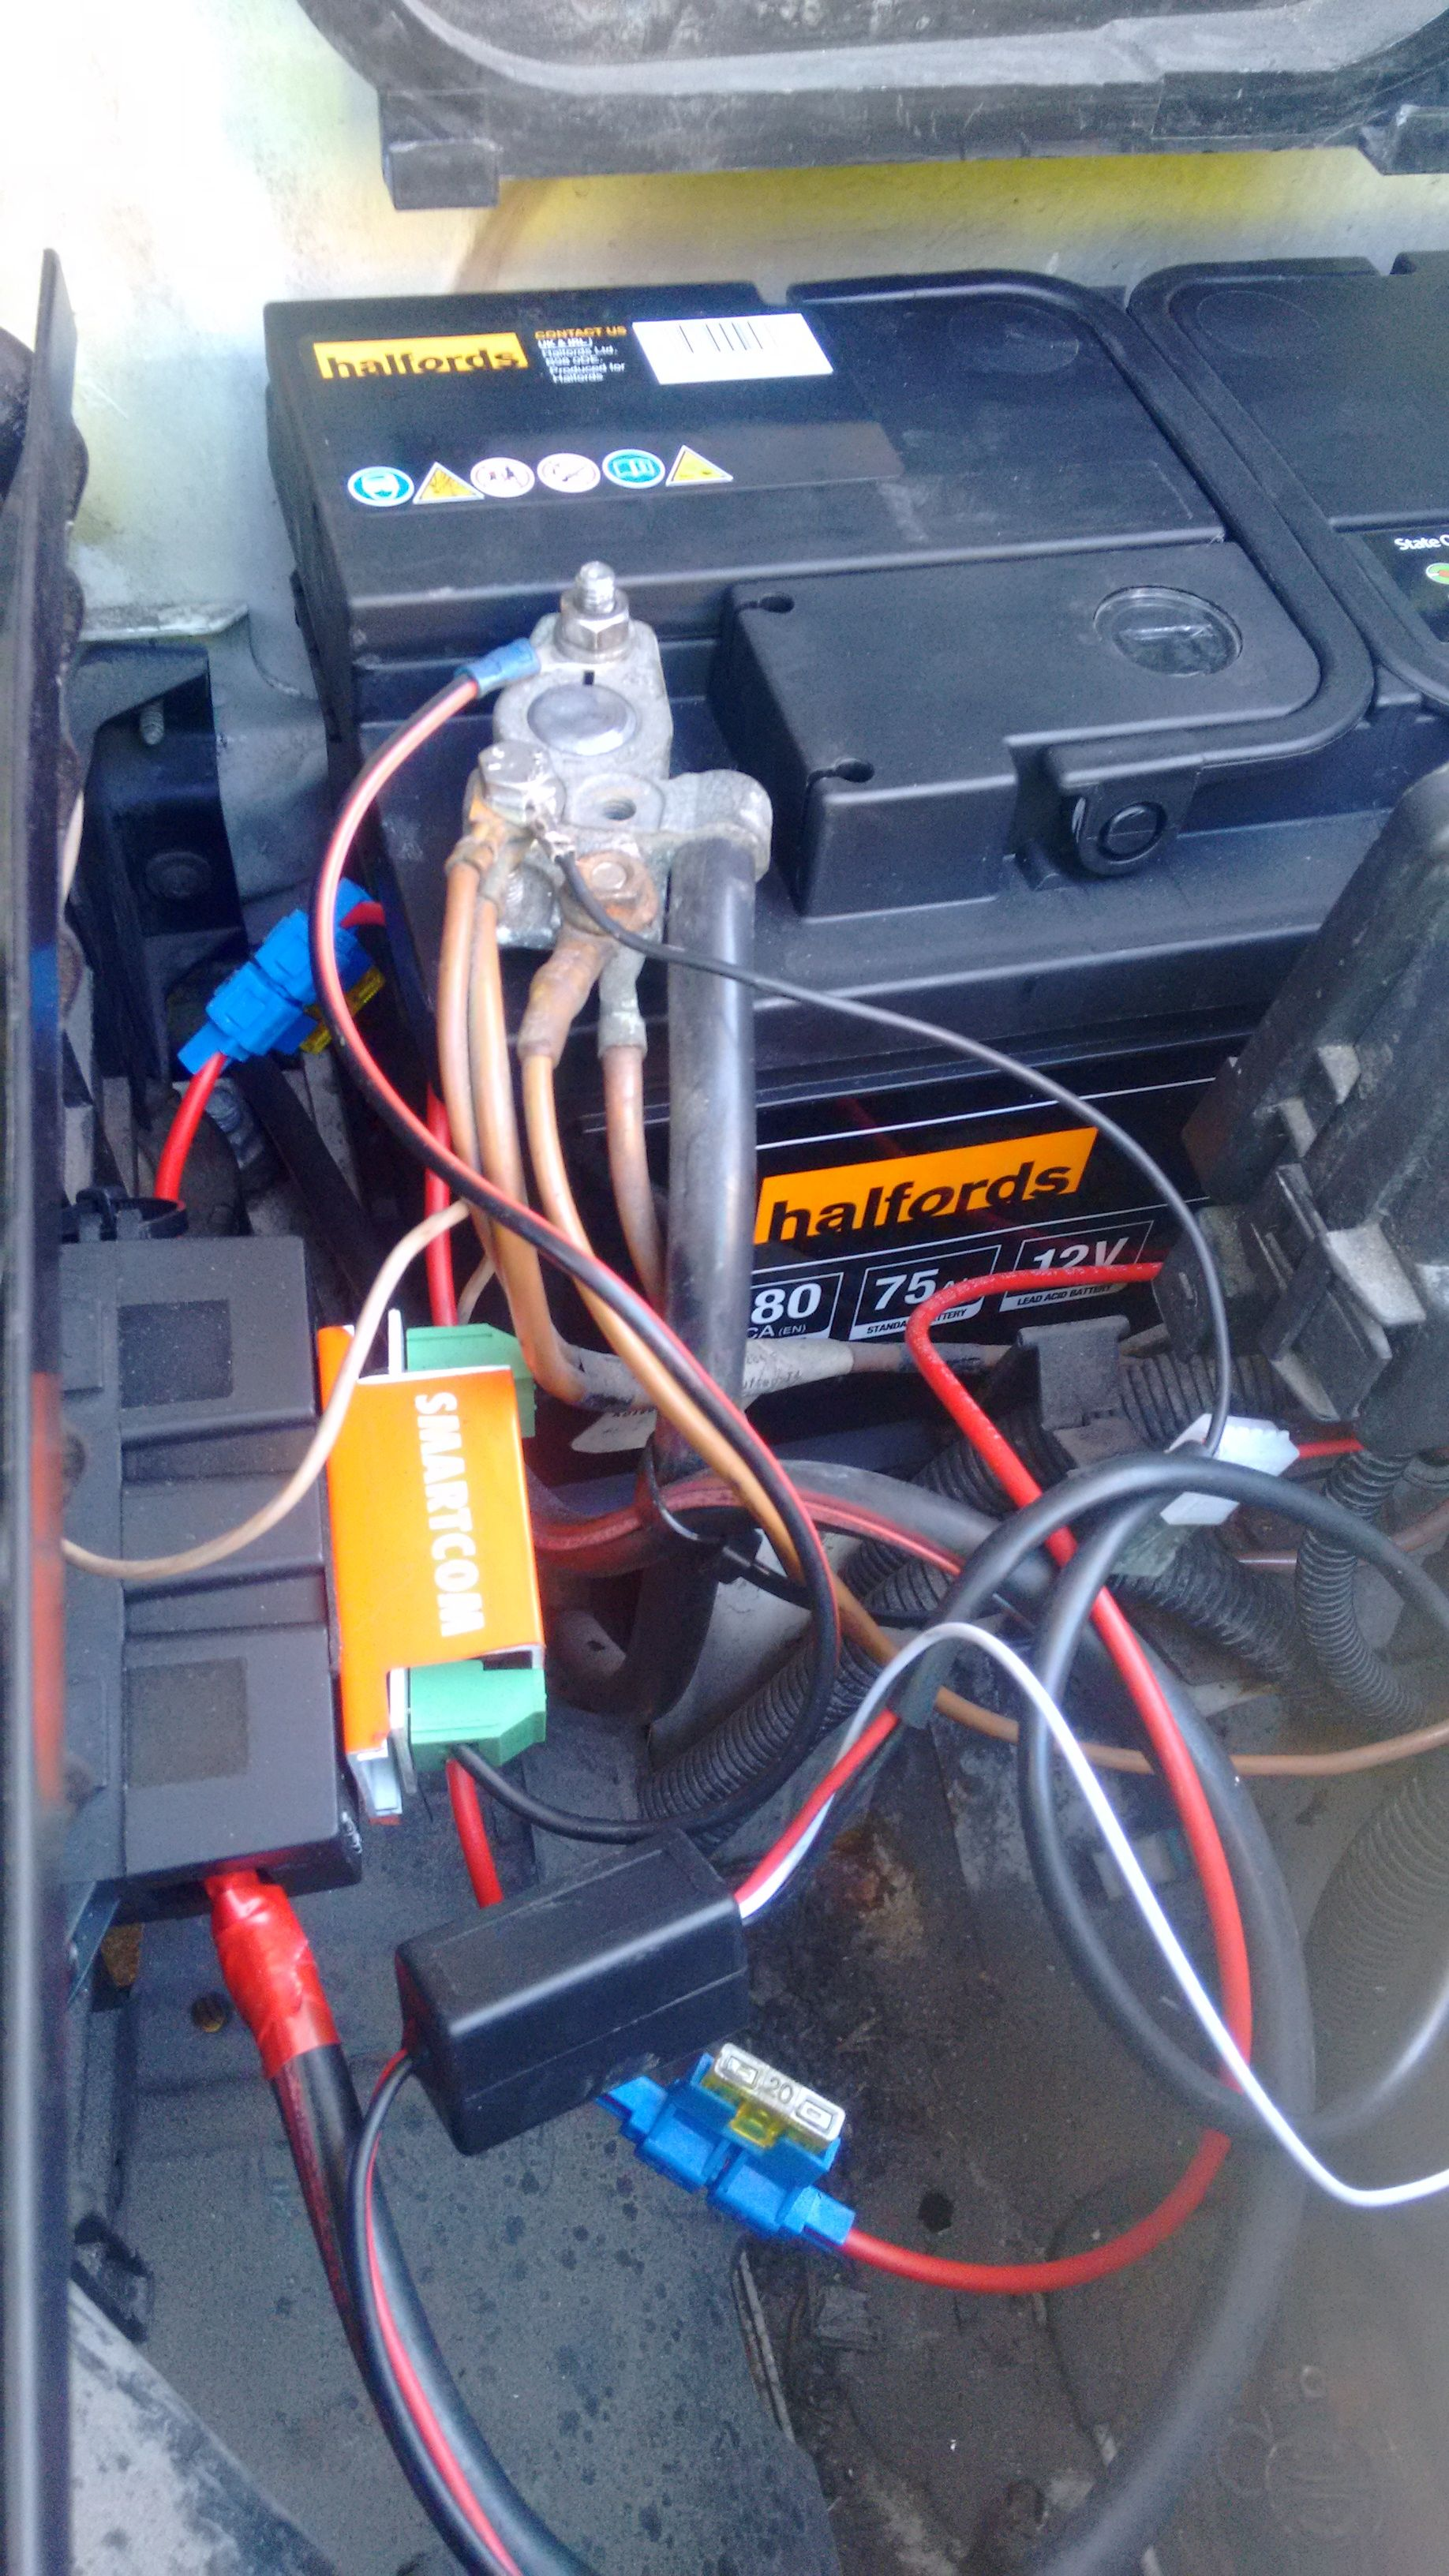 Had To Get A New Battery Despite Wiring Up The Smartcom Split Charging Unit The Battery Was Still Weak I Also Wired In A Drl Black Box Switches The Unit